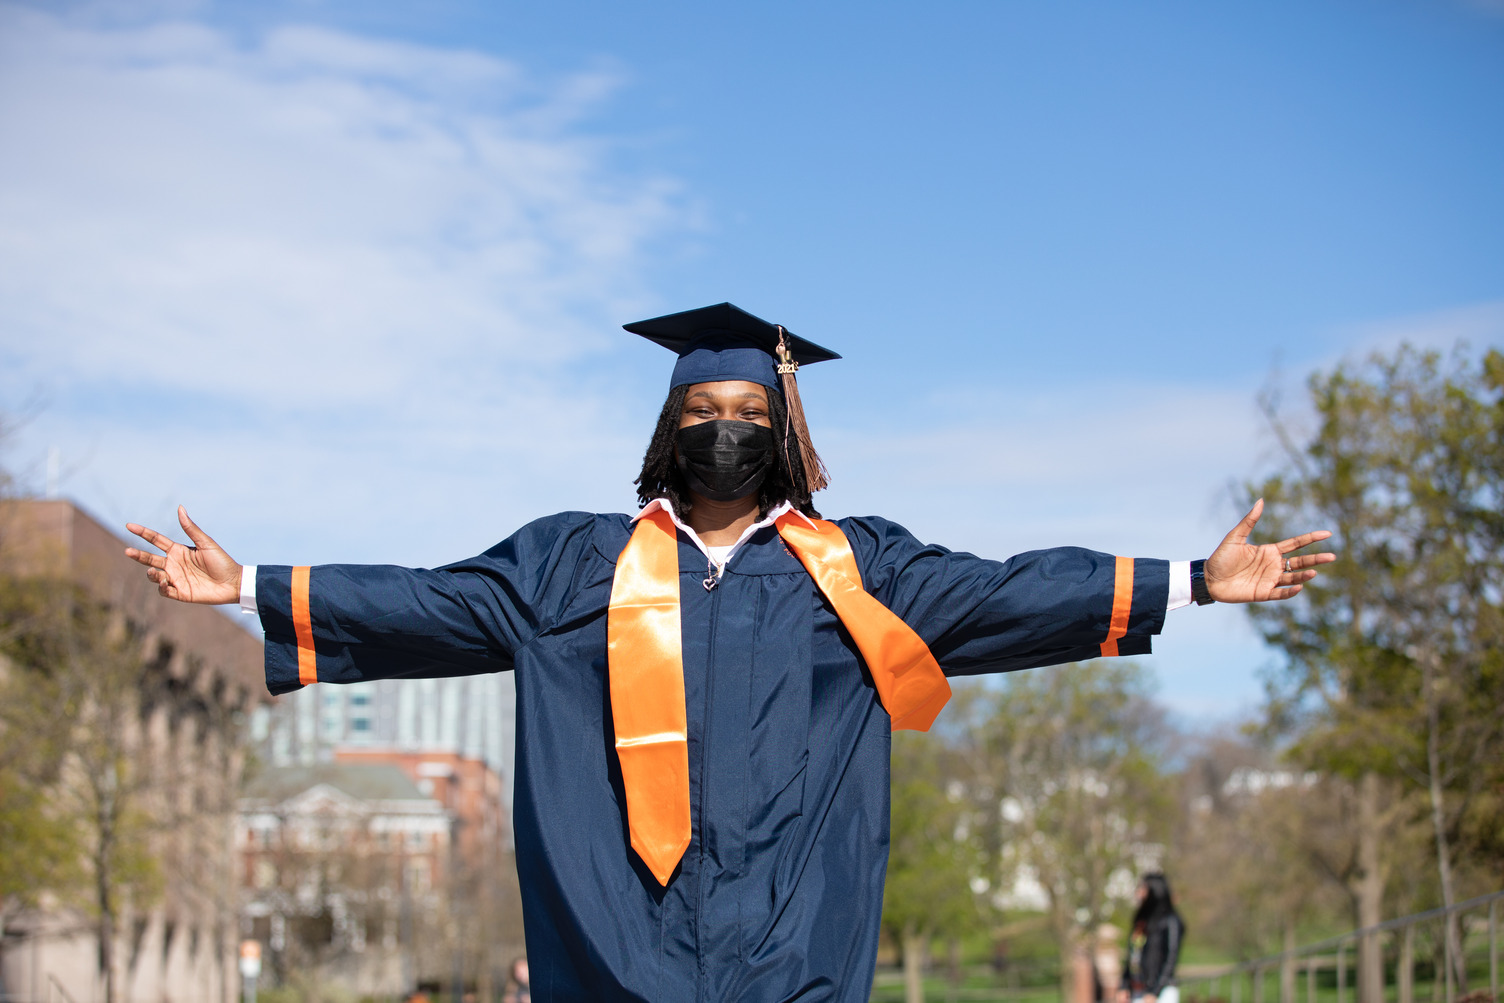 student in cap and gown stands with arms outstretched outside during Commencement 2021